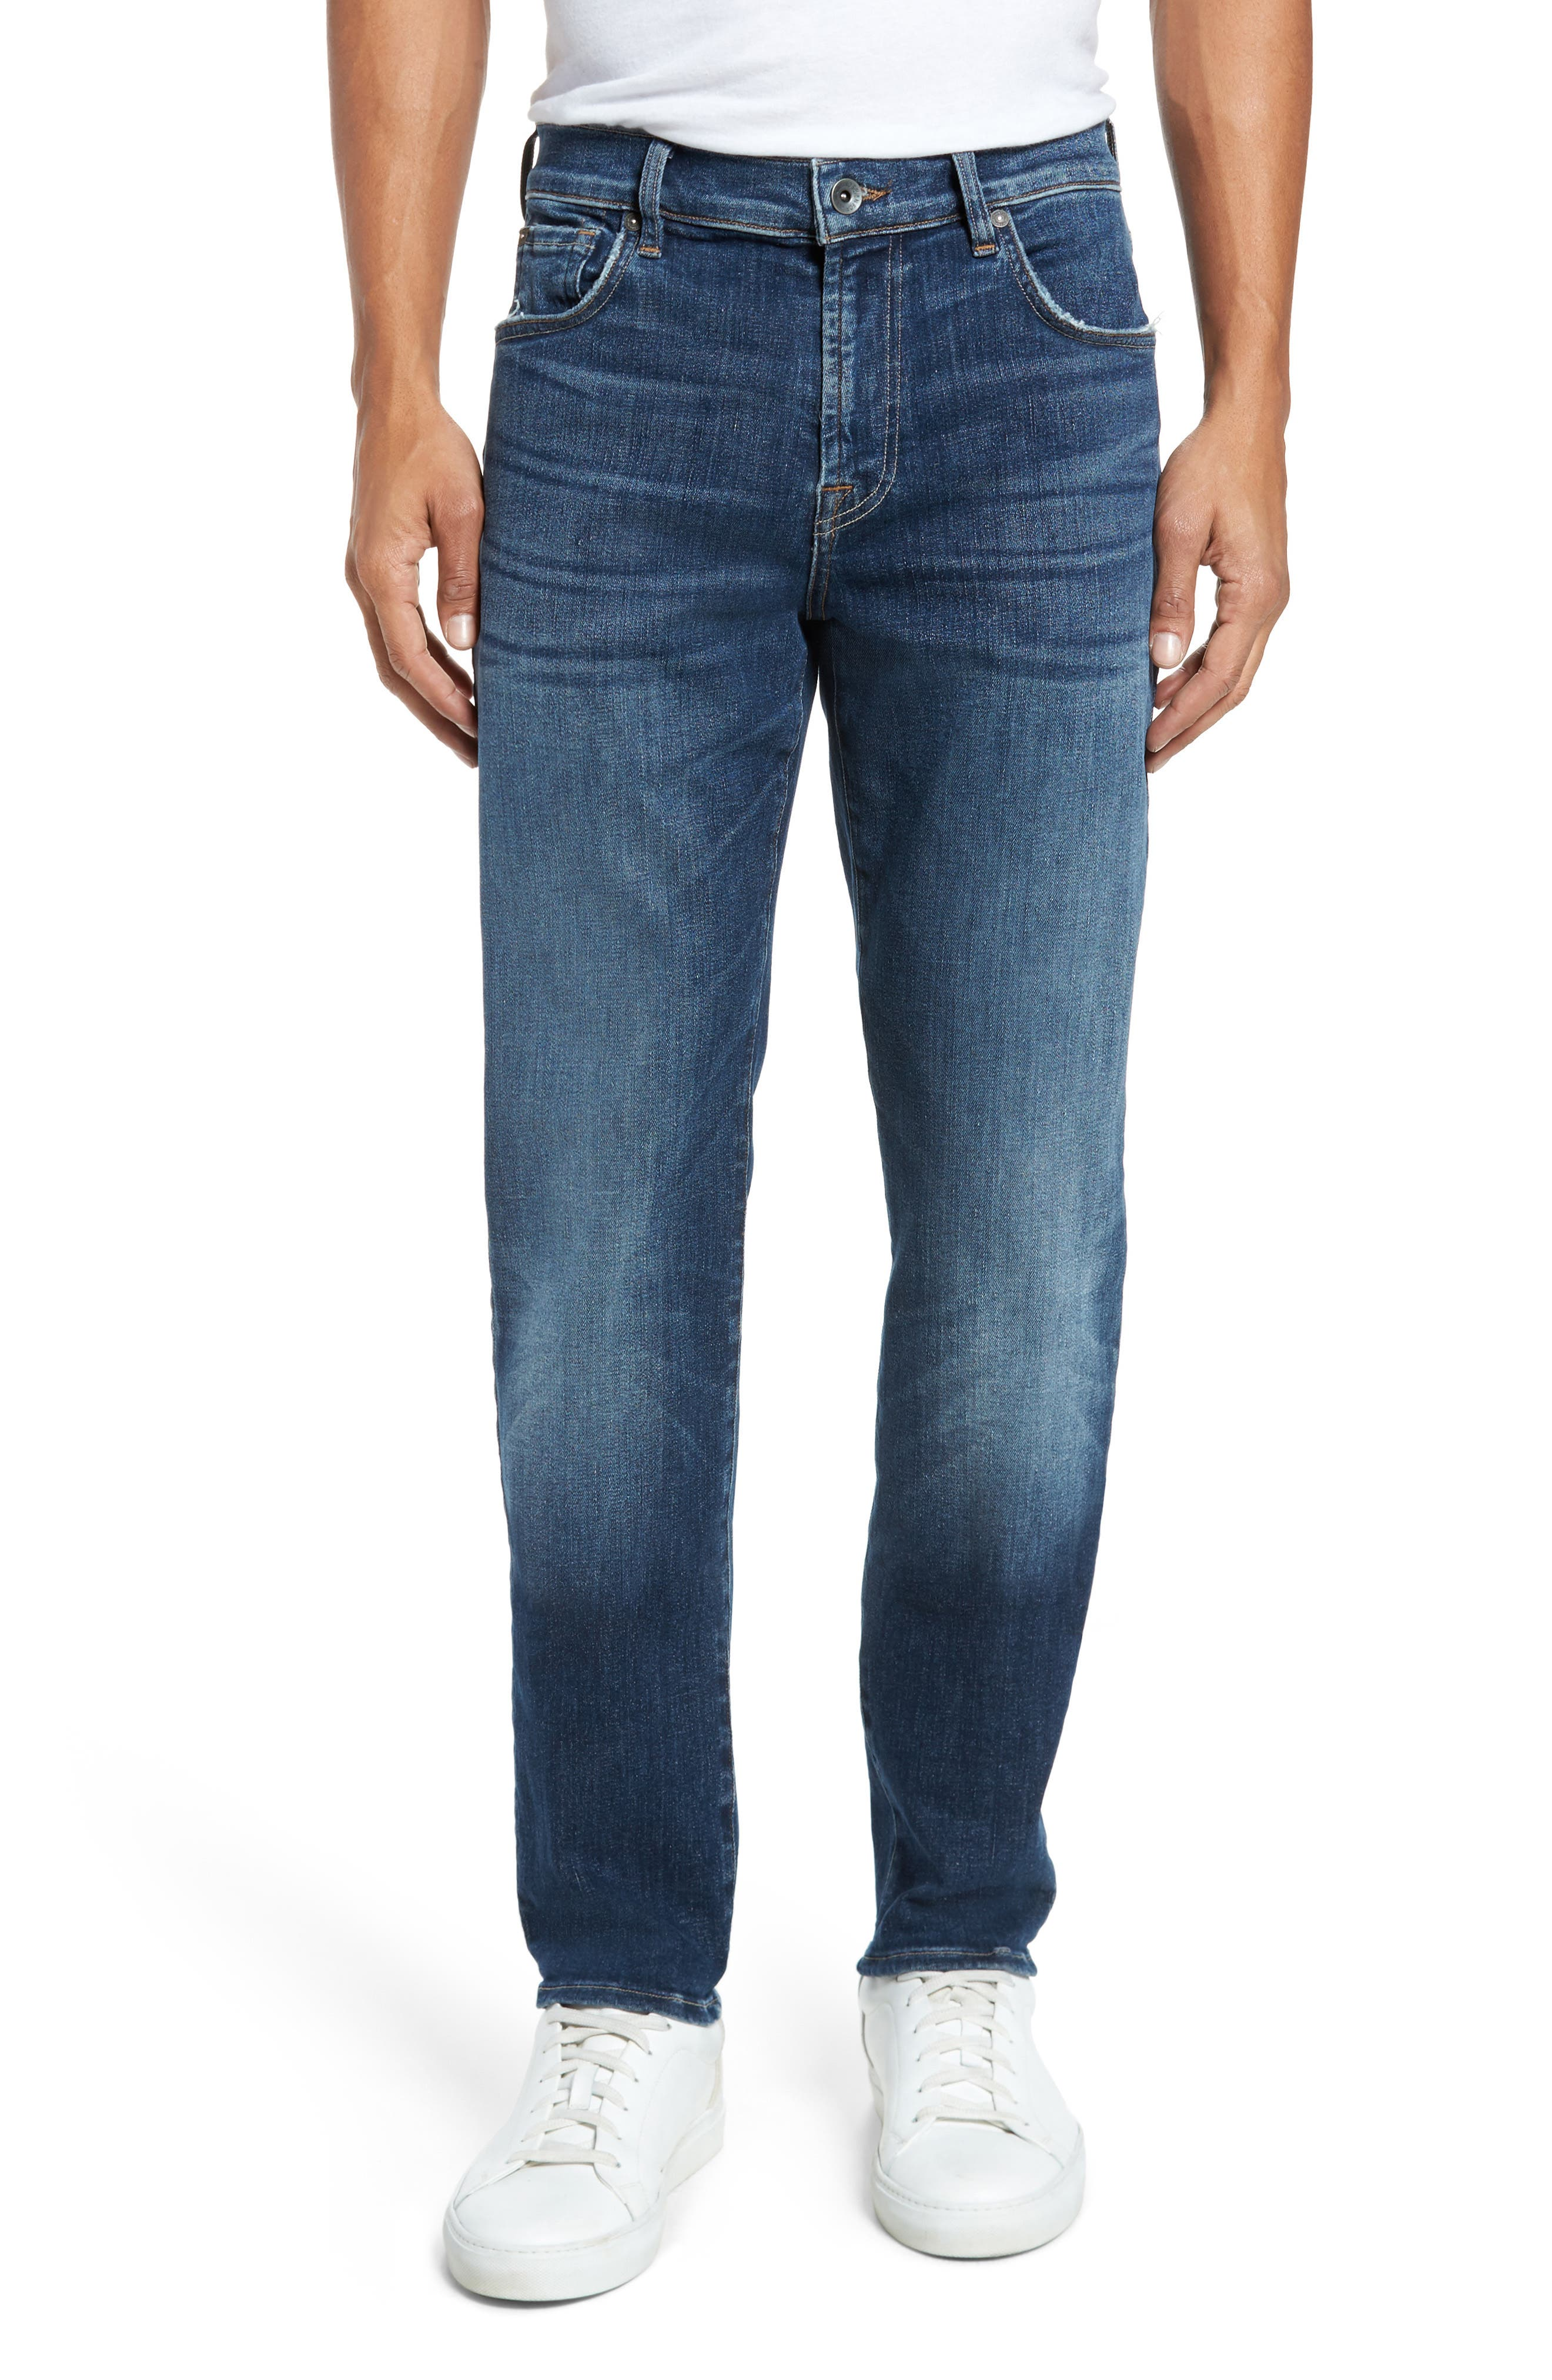 Adrien Slim Fit Jeans,                             Main thumbnail 1, color,                             Authentic Euphoria